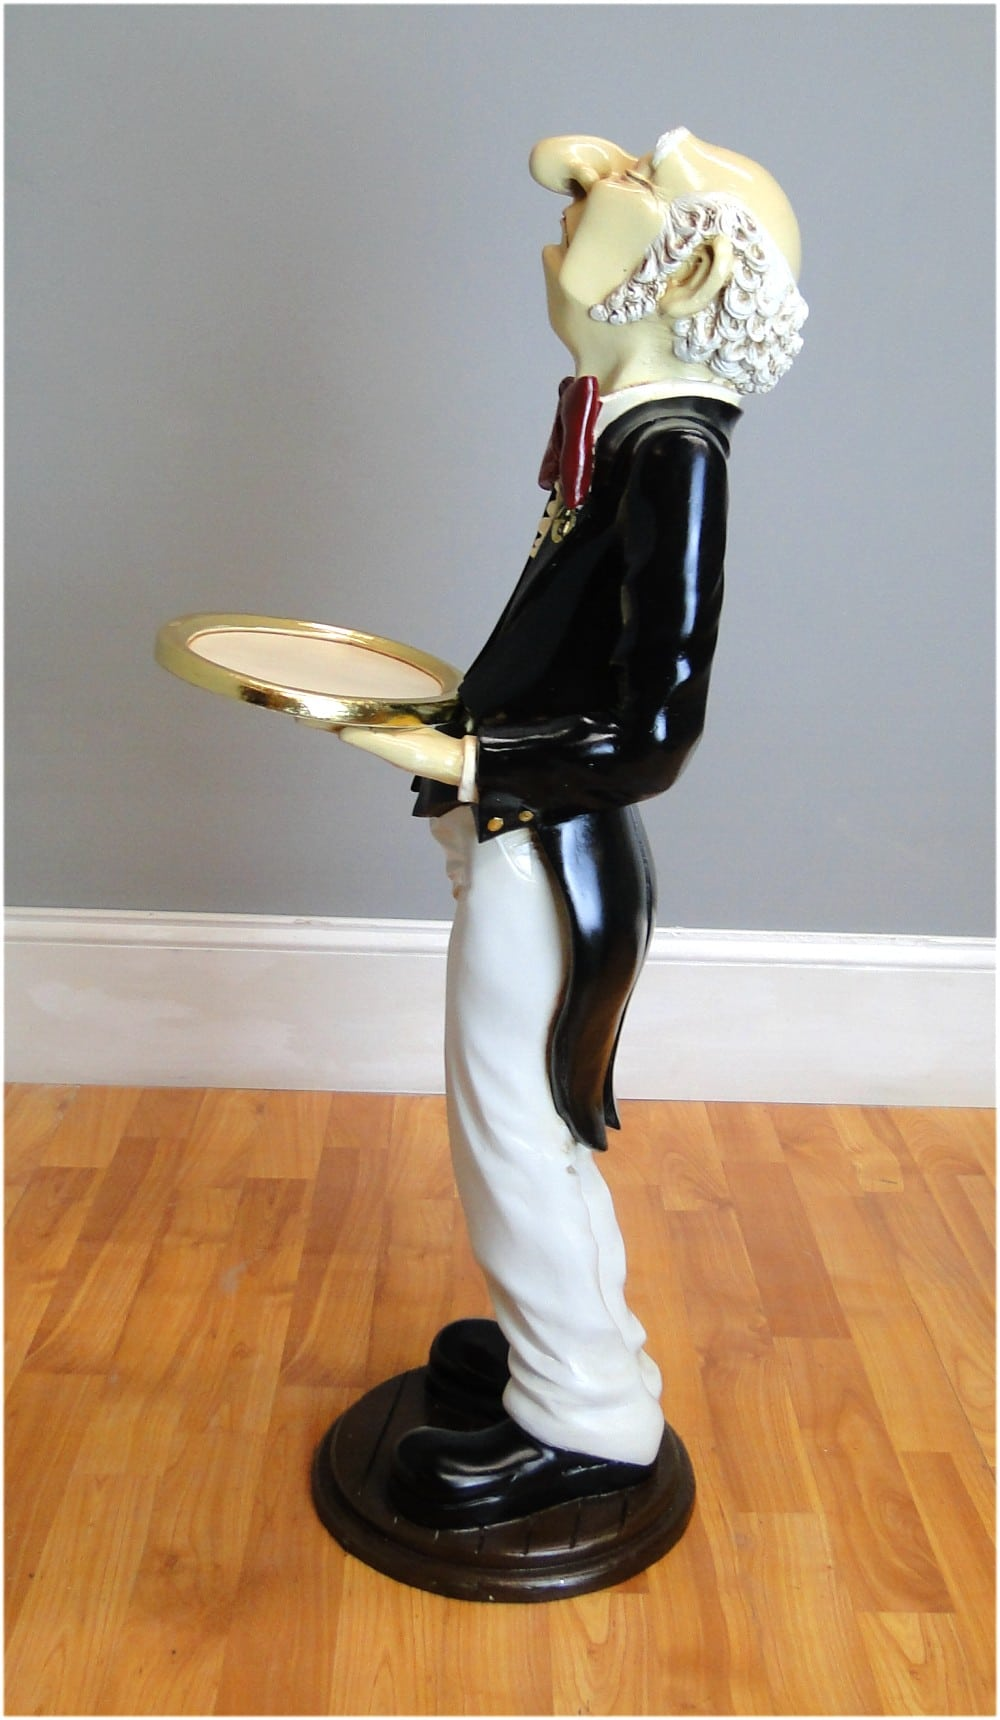 Snobby Butler Statue 3 Wine Waiter with Gold Leaf Tray in